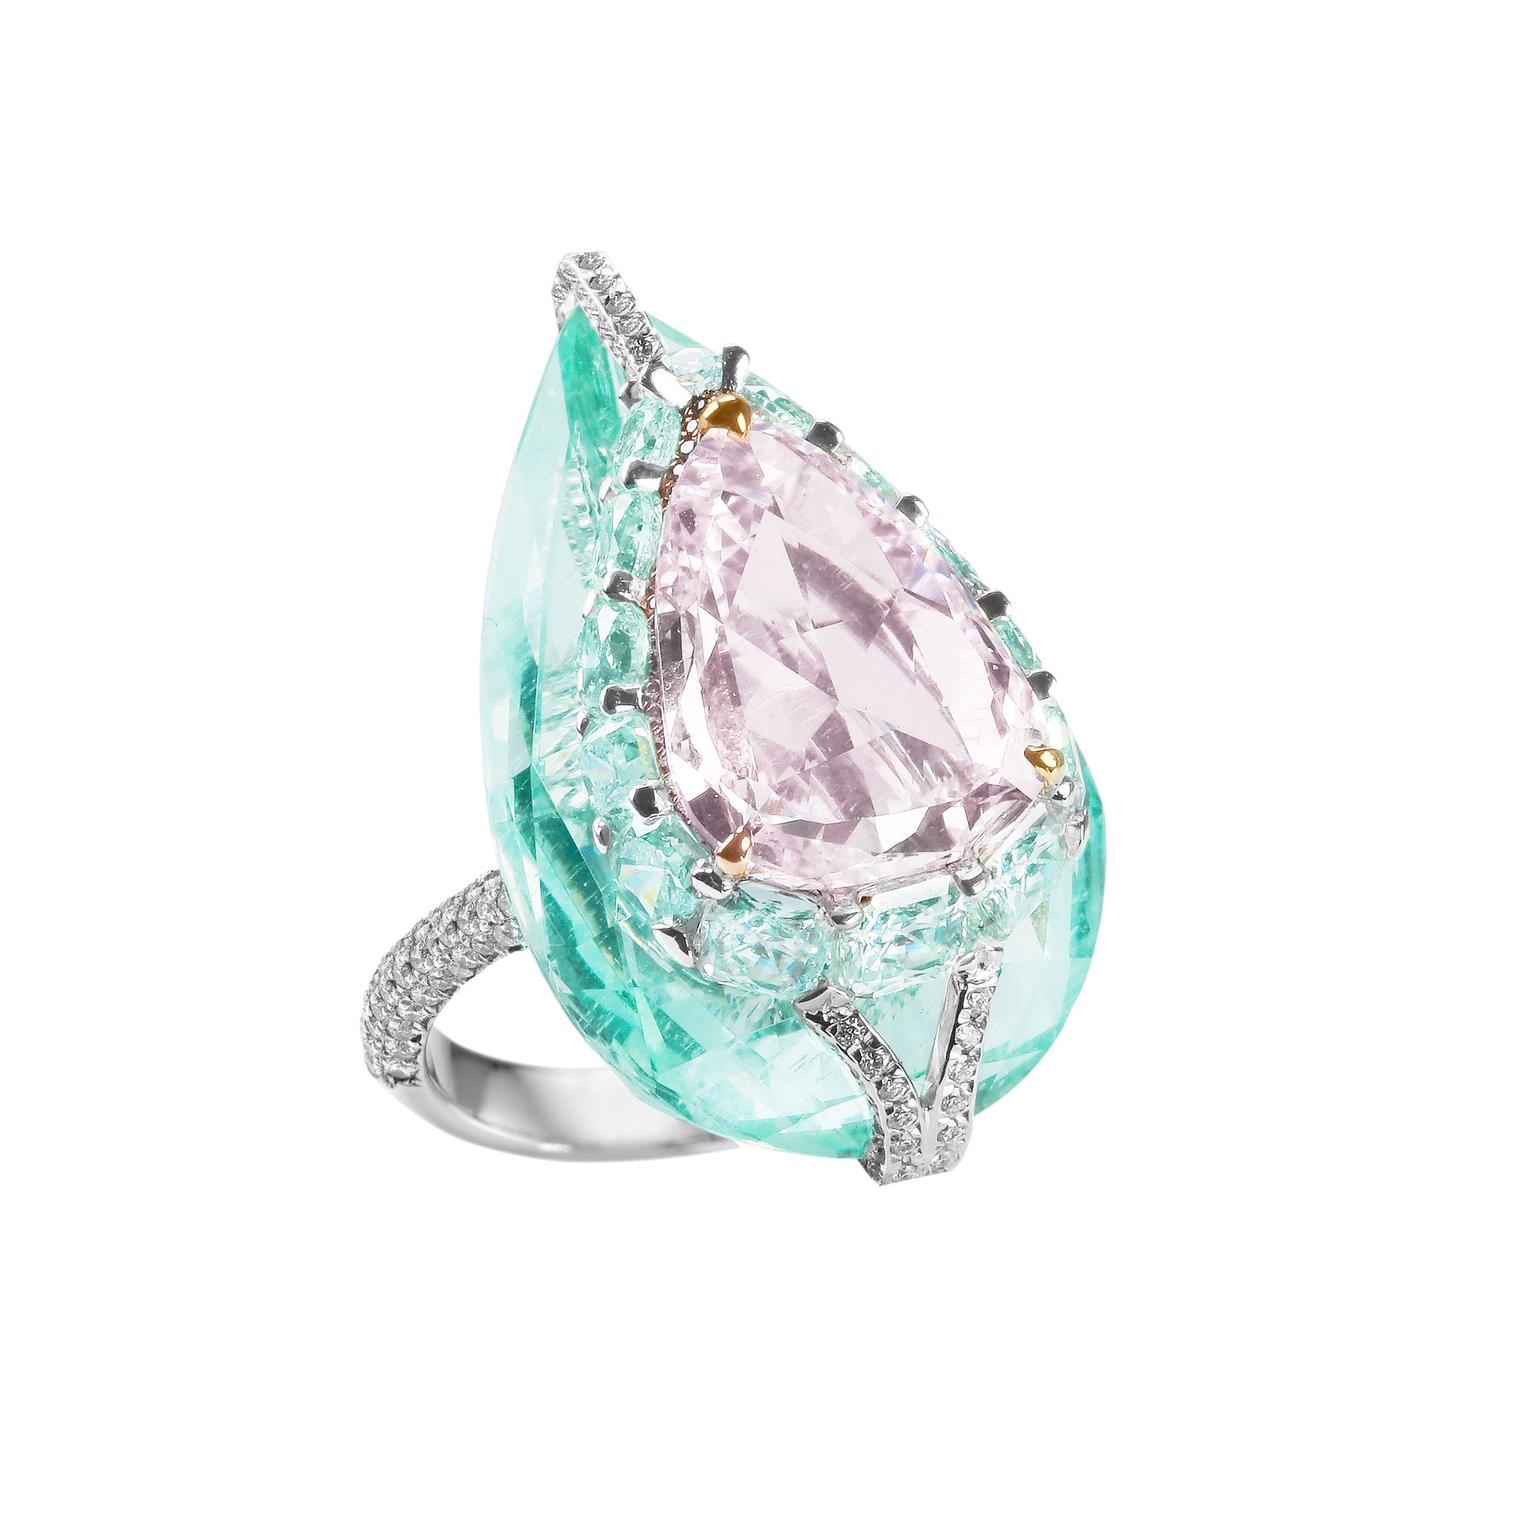 Boghossian Kissing Diamond pink diamond and beryl ring